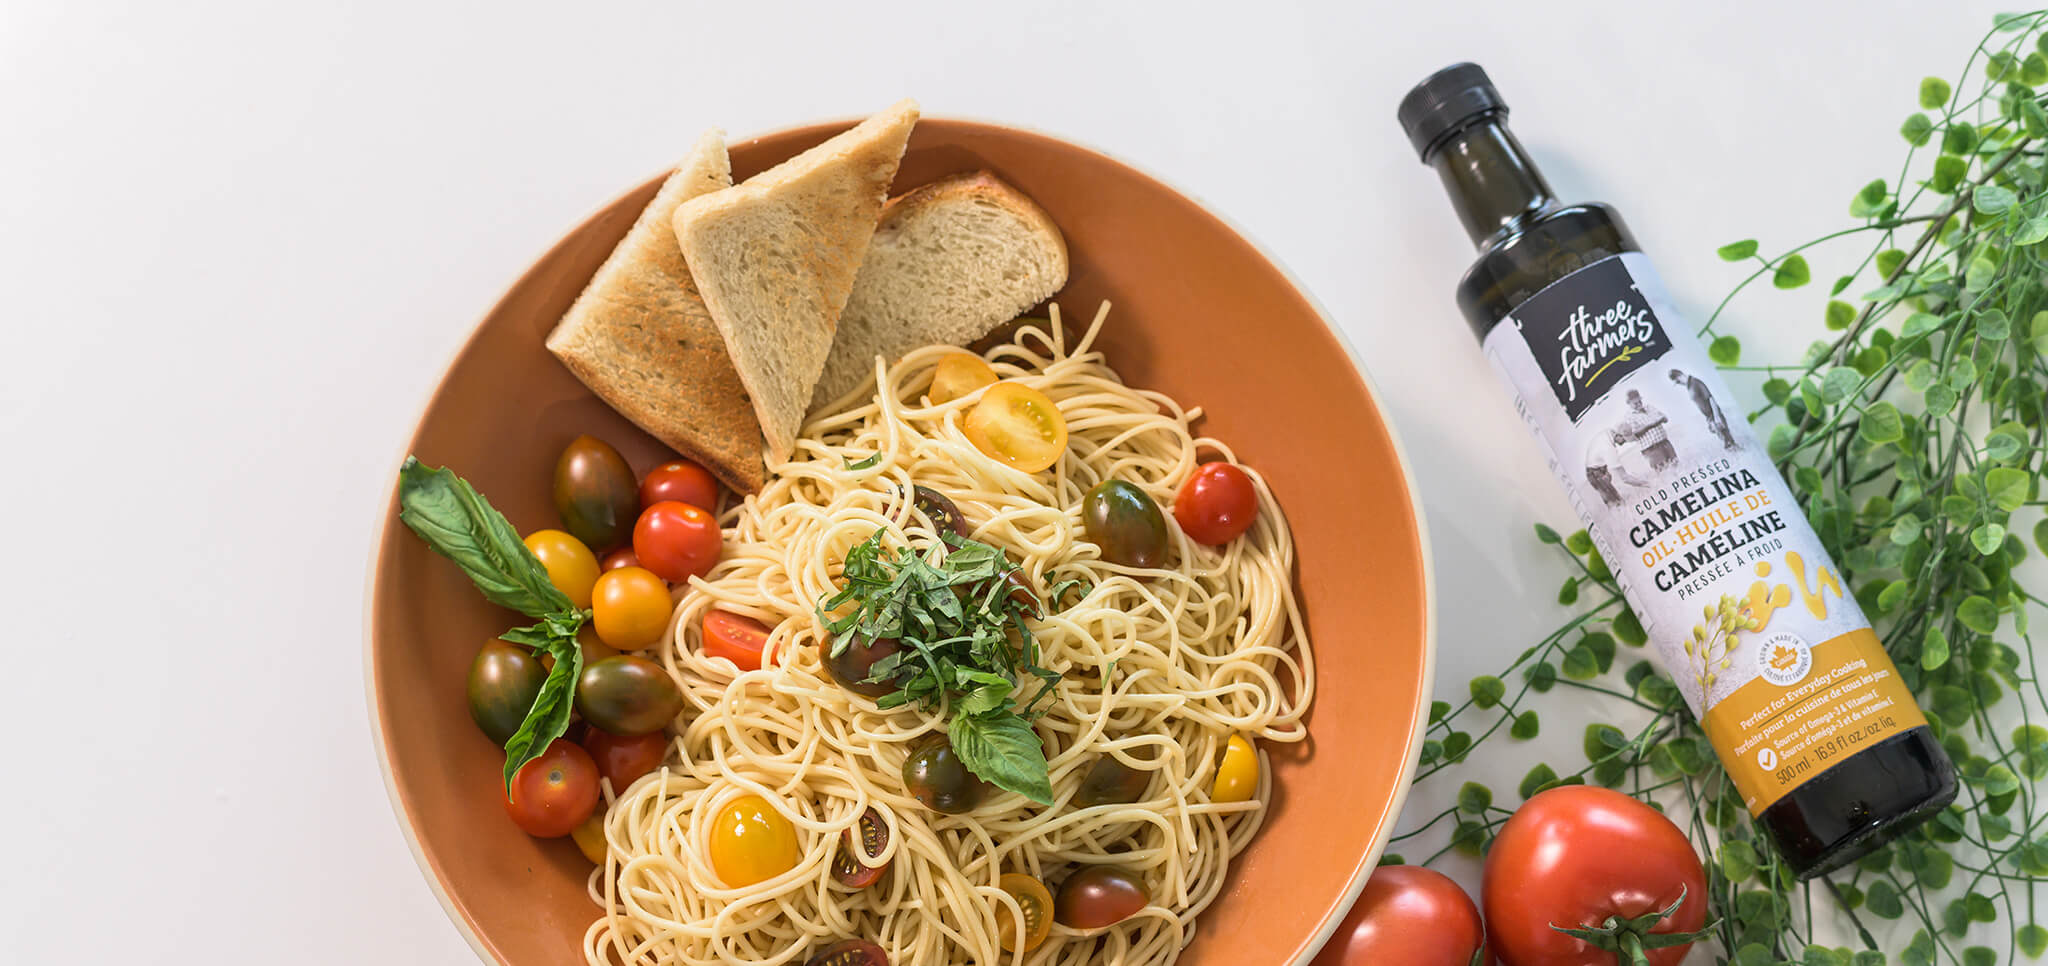 Camelina Oil and pasta bowl